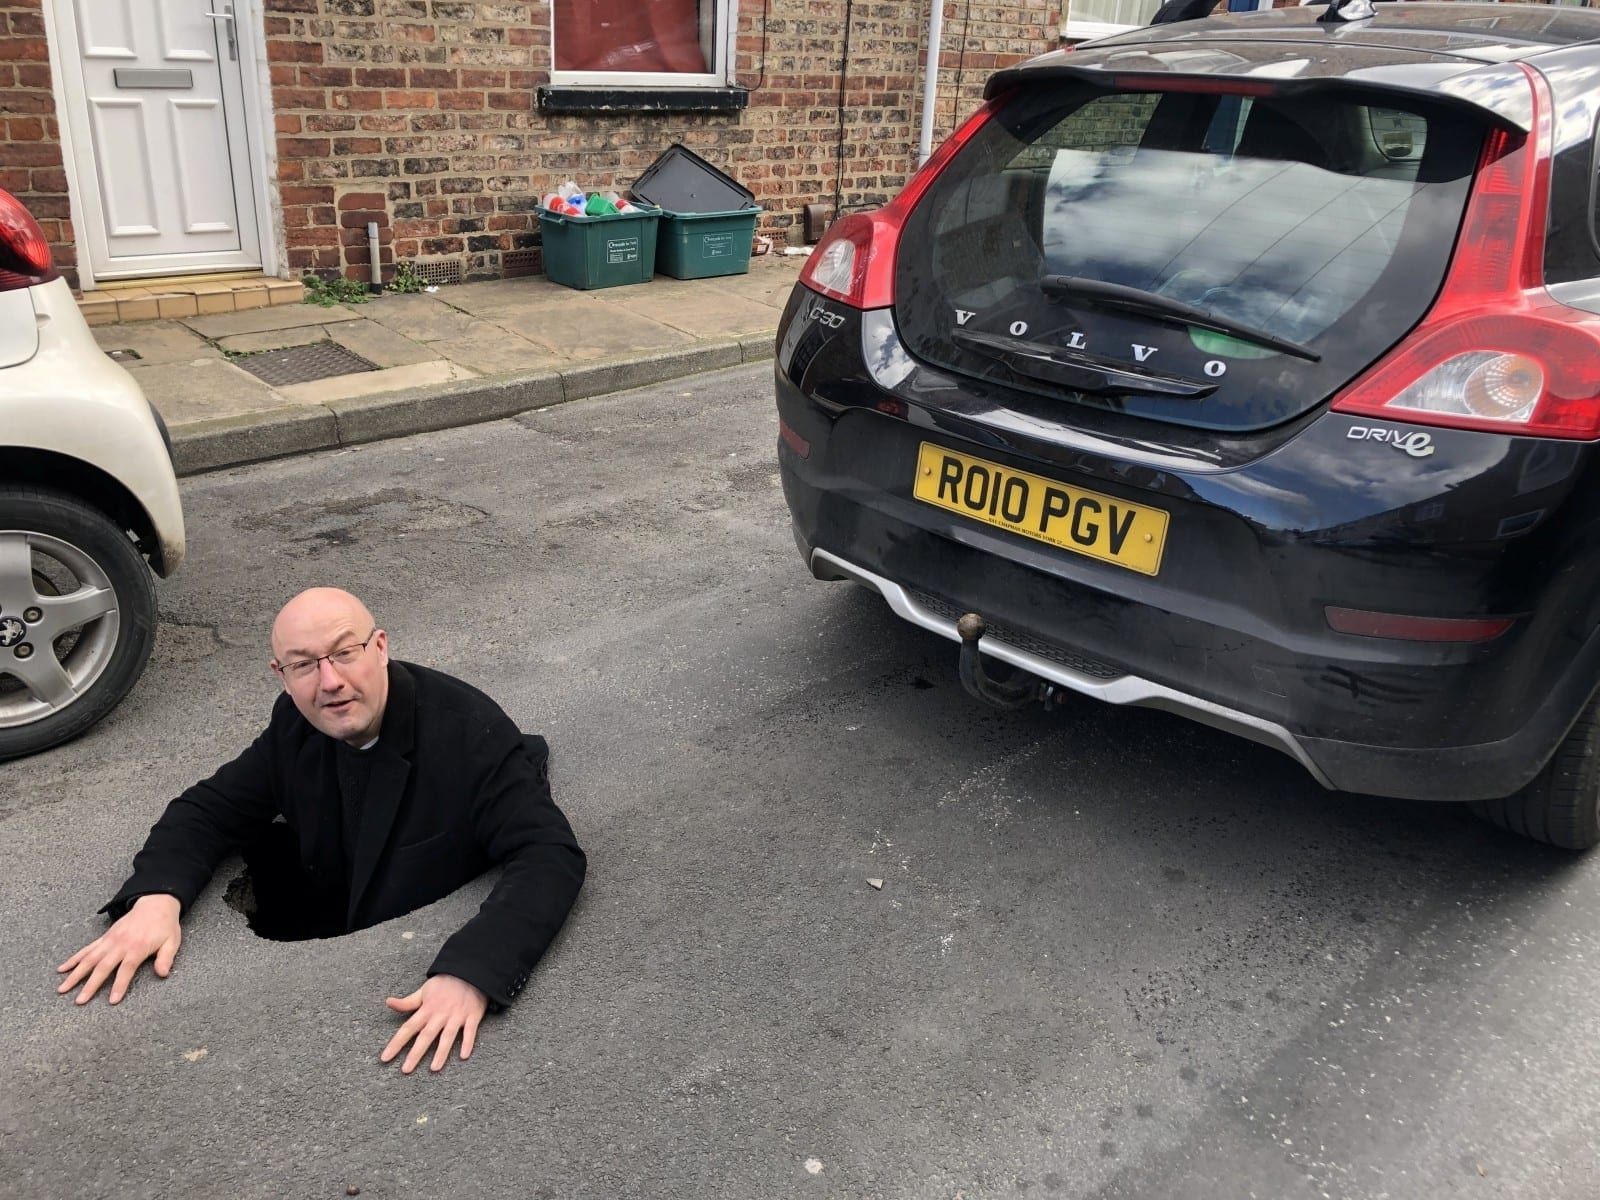 Motorist Plunged Into Four Foot Deep Pothole – Then Climbed Inside It